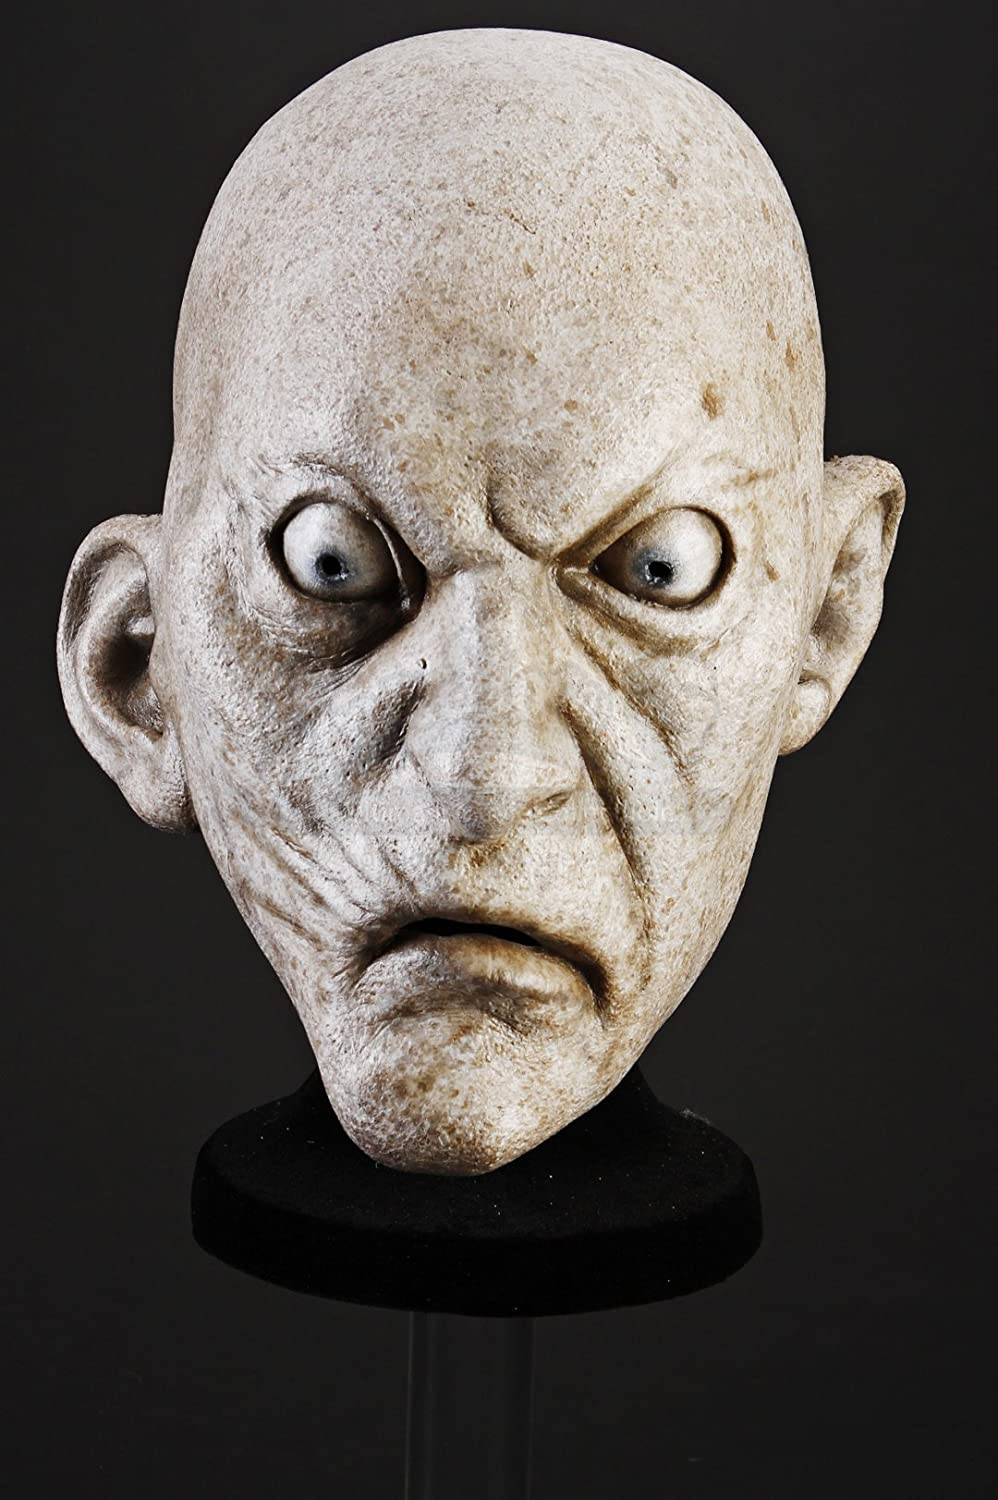 Original Movie Prop Scary Movie 5 Mama Scot Nery Mask Authentic At Amazon S Entertainment Collectibles Store